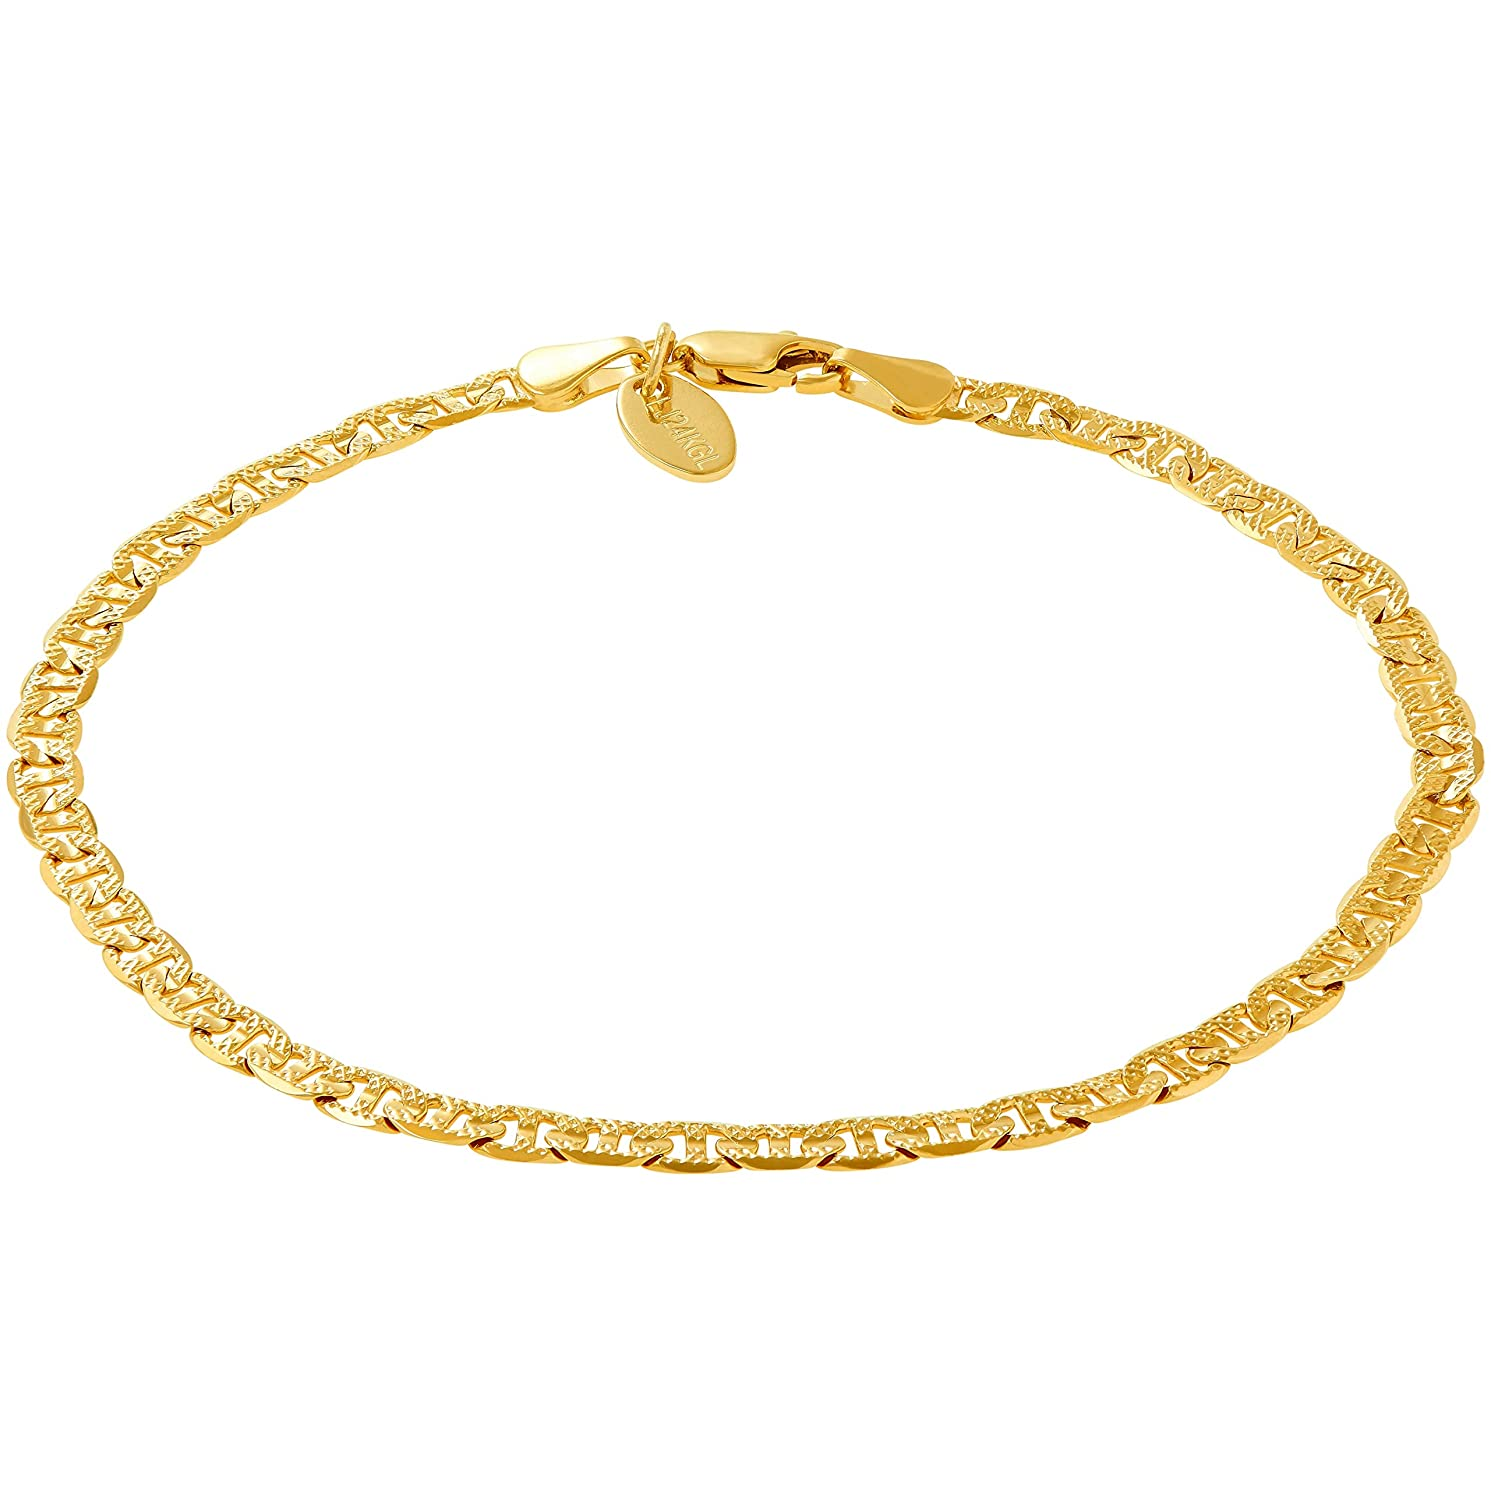 Lifetime Jewelry Ankle Bracelets for Women Men and Teen Girls [ 4mm Gold Mariner Link Chain Anklet ] 20X More Real 24k Plating Than Other Foot Jewelry - Cute & Durable for Beach or Wedding 9